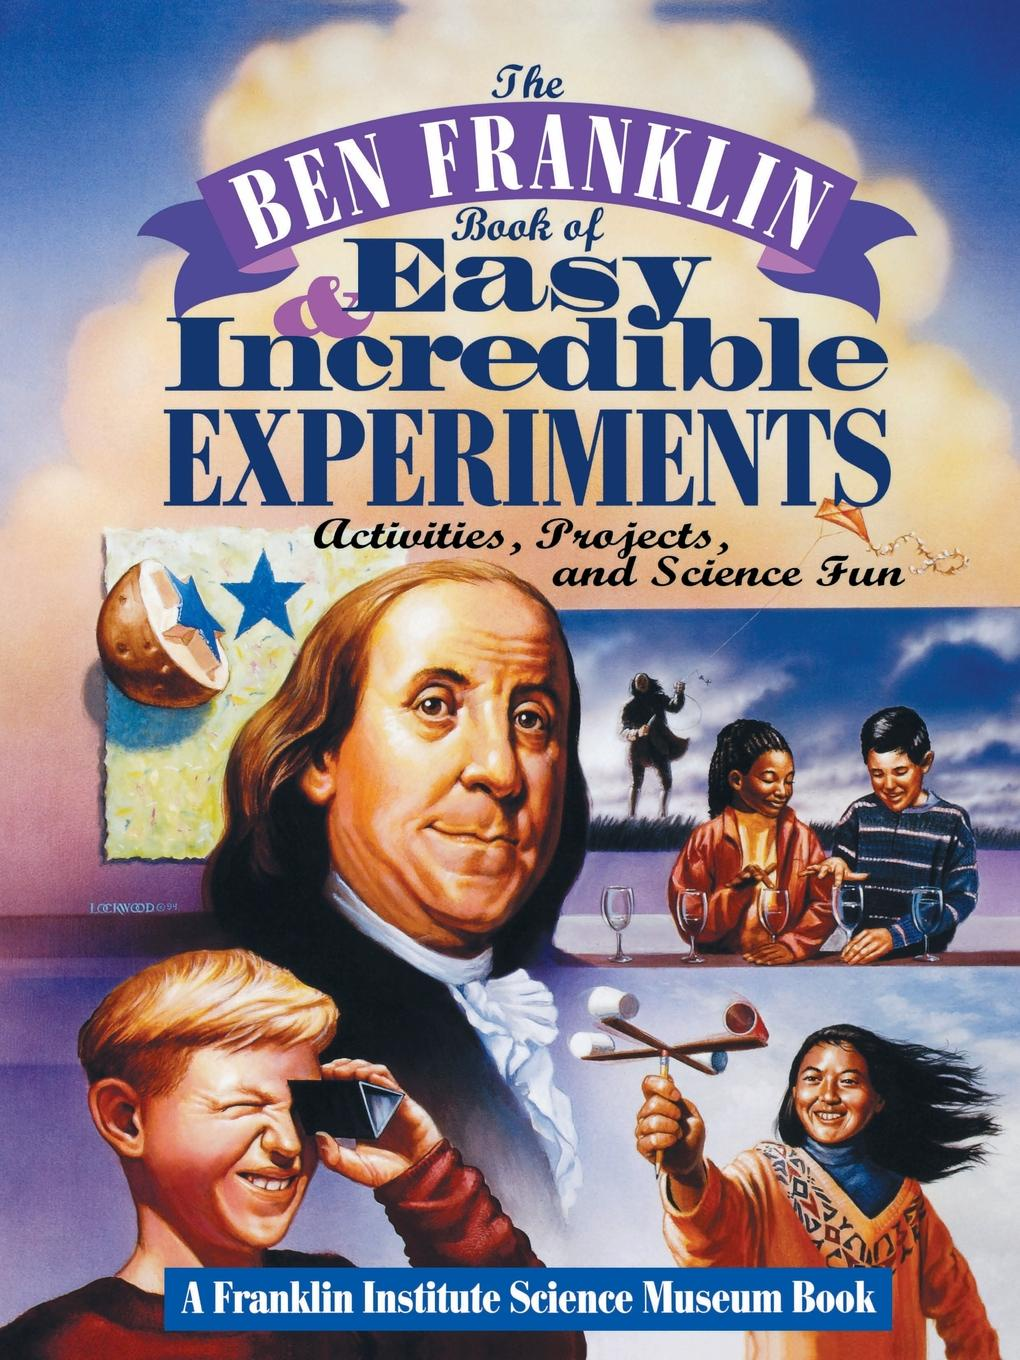 Franklin Institute, Lastfranklin Institute Science Museum The Ben Book of Easy and Incredible Experiments. A